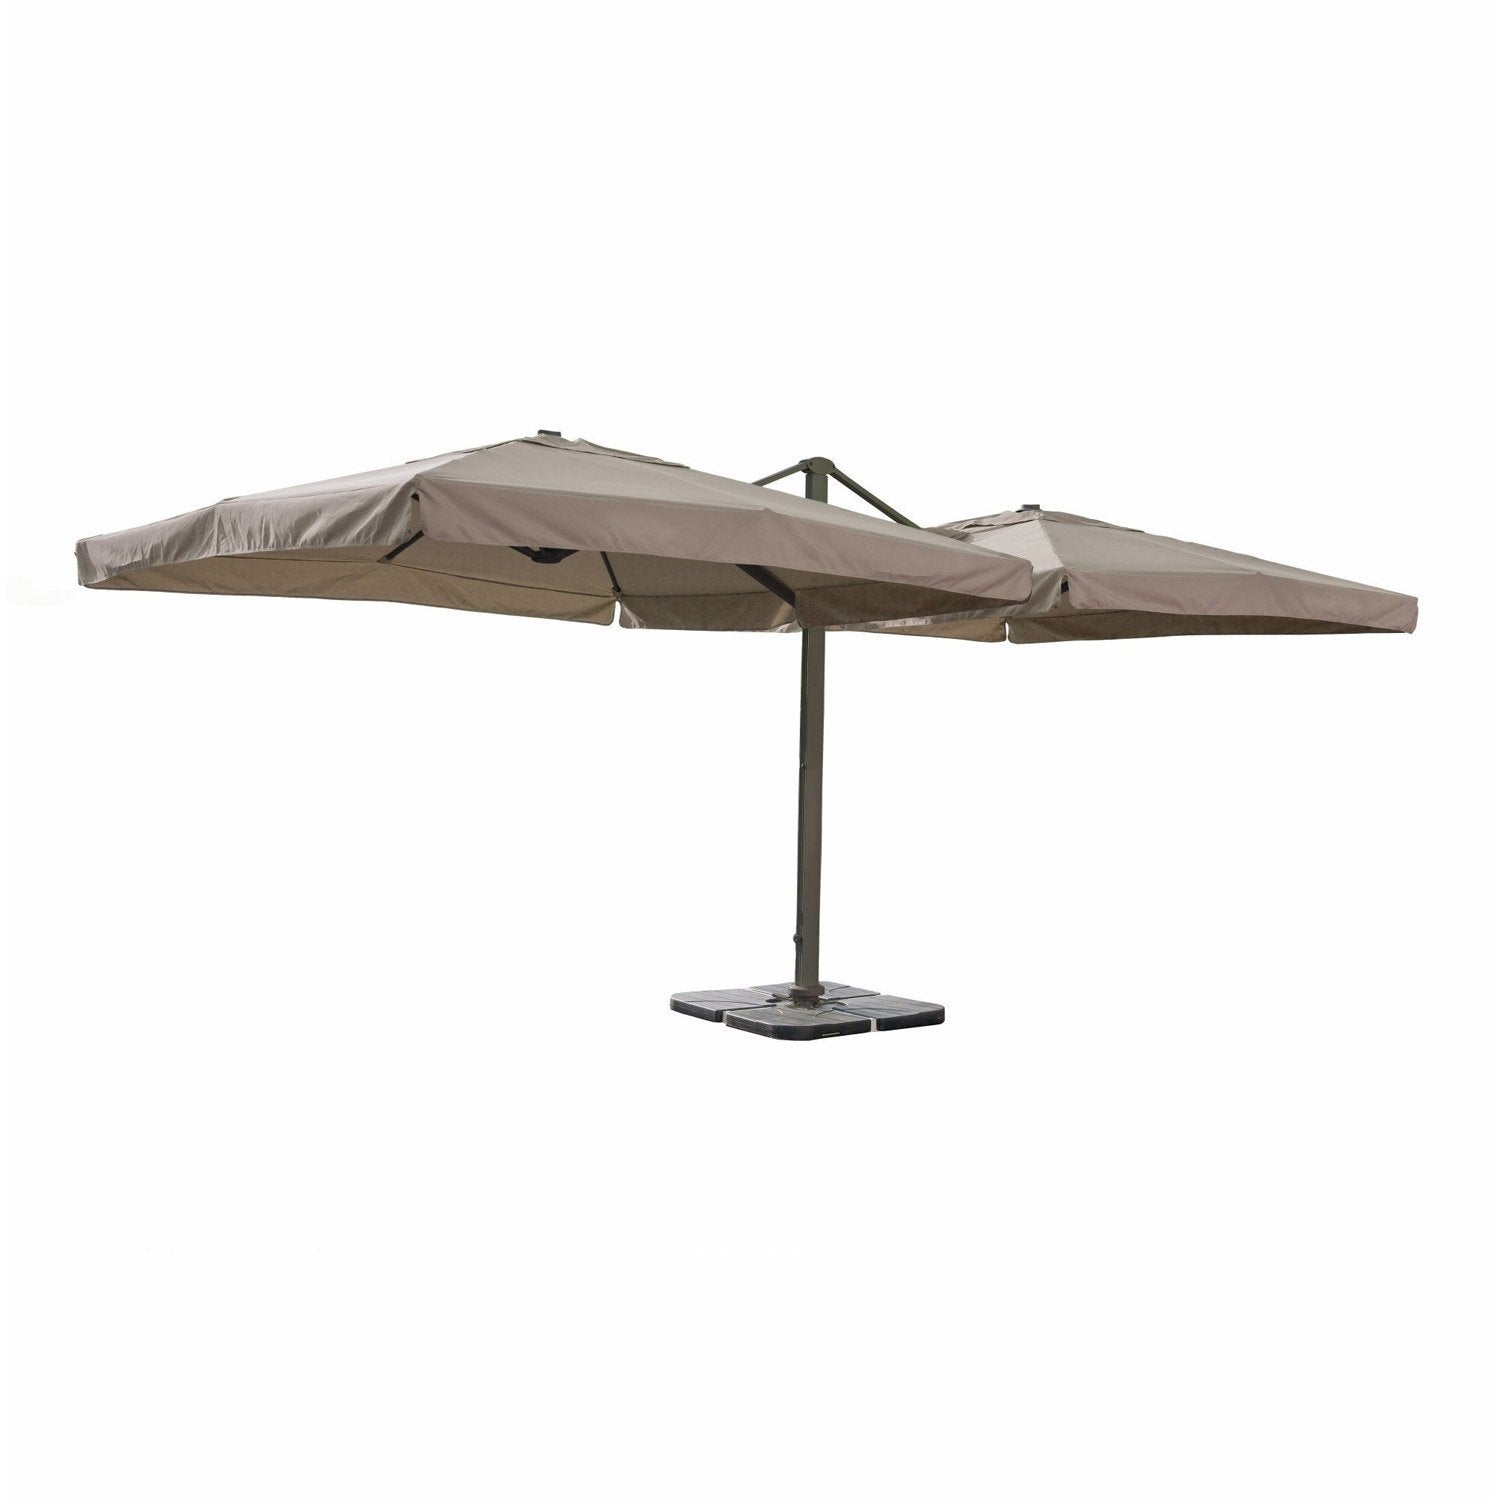 Parasol deporte inclinable awesome le pack parasol dport - Parasol deporte inclinable leroy merlin ...